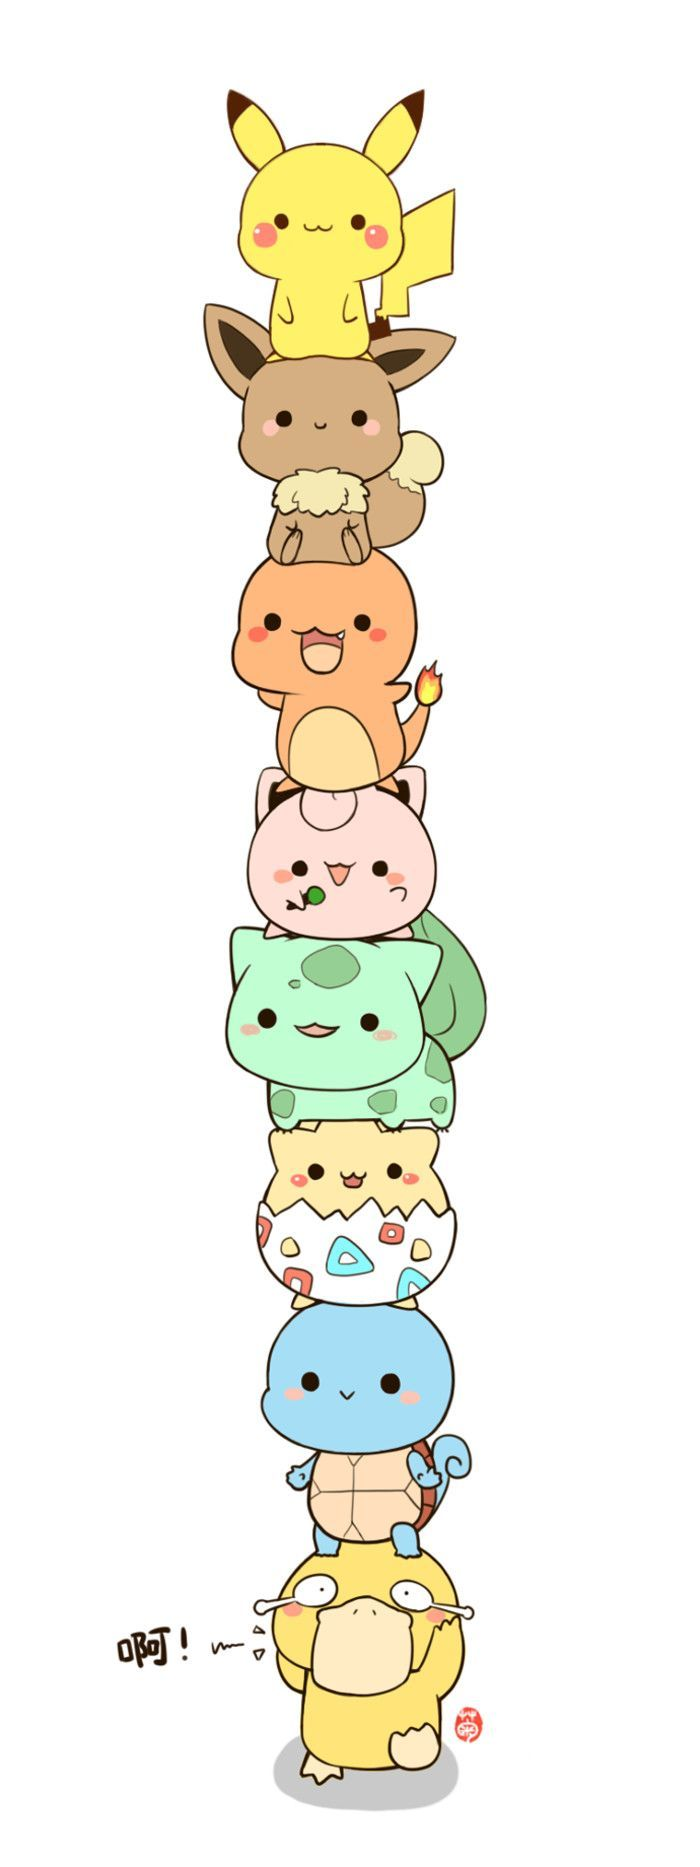 Ms de 25 ideas increbles sobre Dibujos kawaii tiernos en